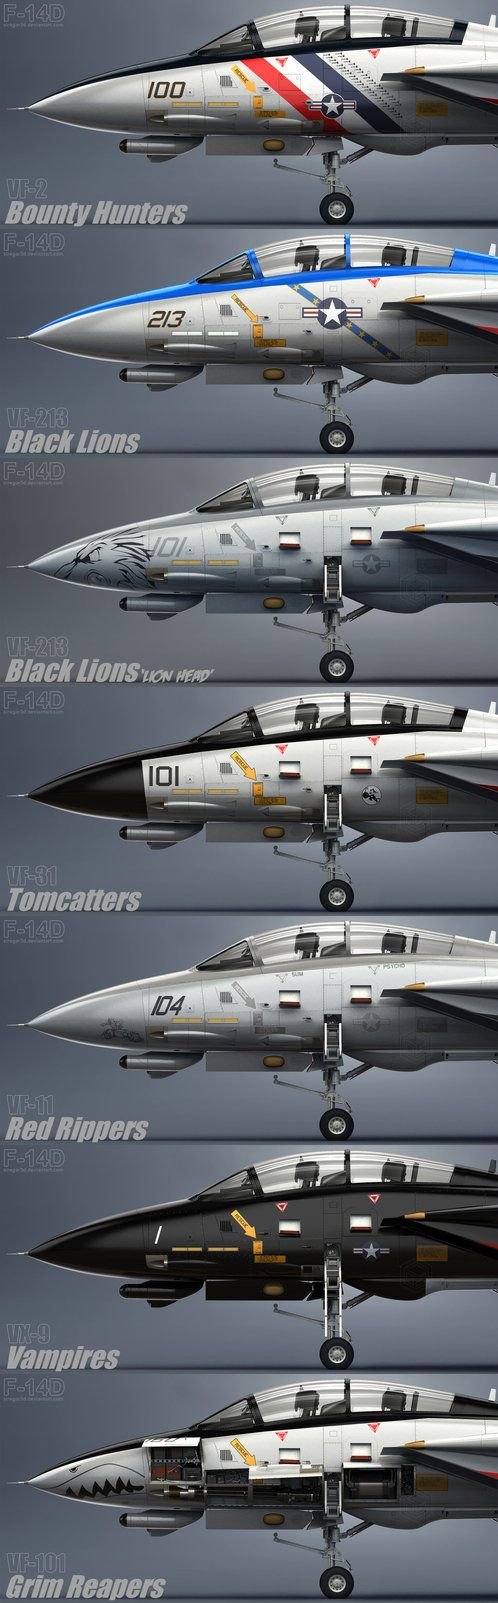 F14 Tomcat Units  @Jamie Wise Wise Wise Messick Glass: F 14D Squadrons, Tomcat Units, Military Aircraft, Airplane, F14 Tomcat, F 14 Tomcat, Tomcat Squadrons, Fighter Jets